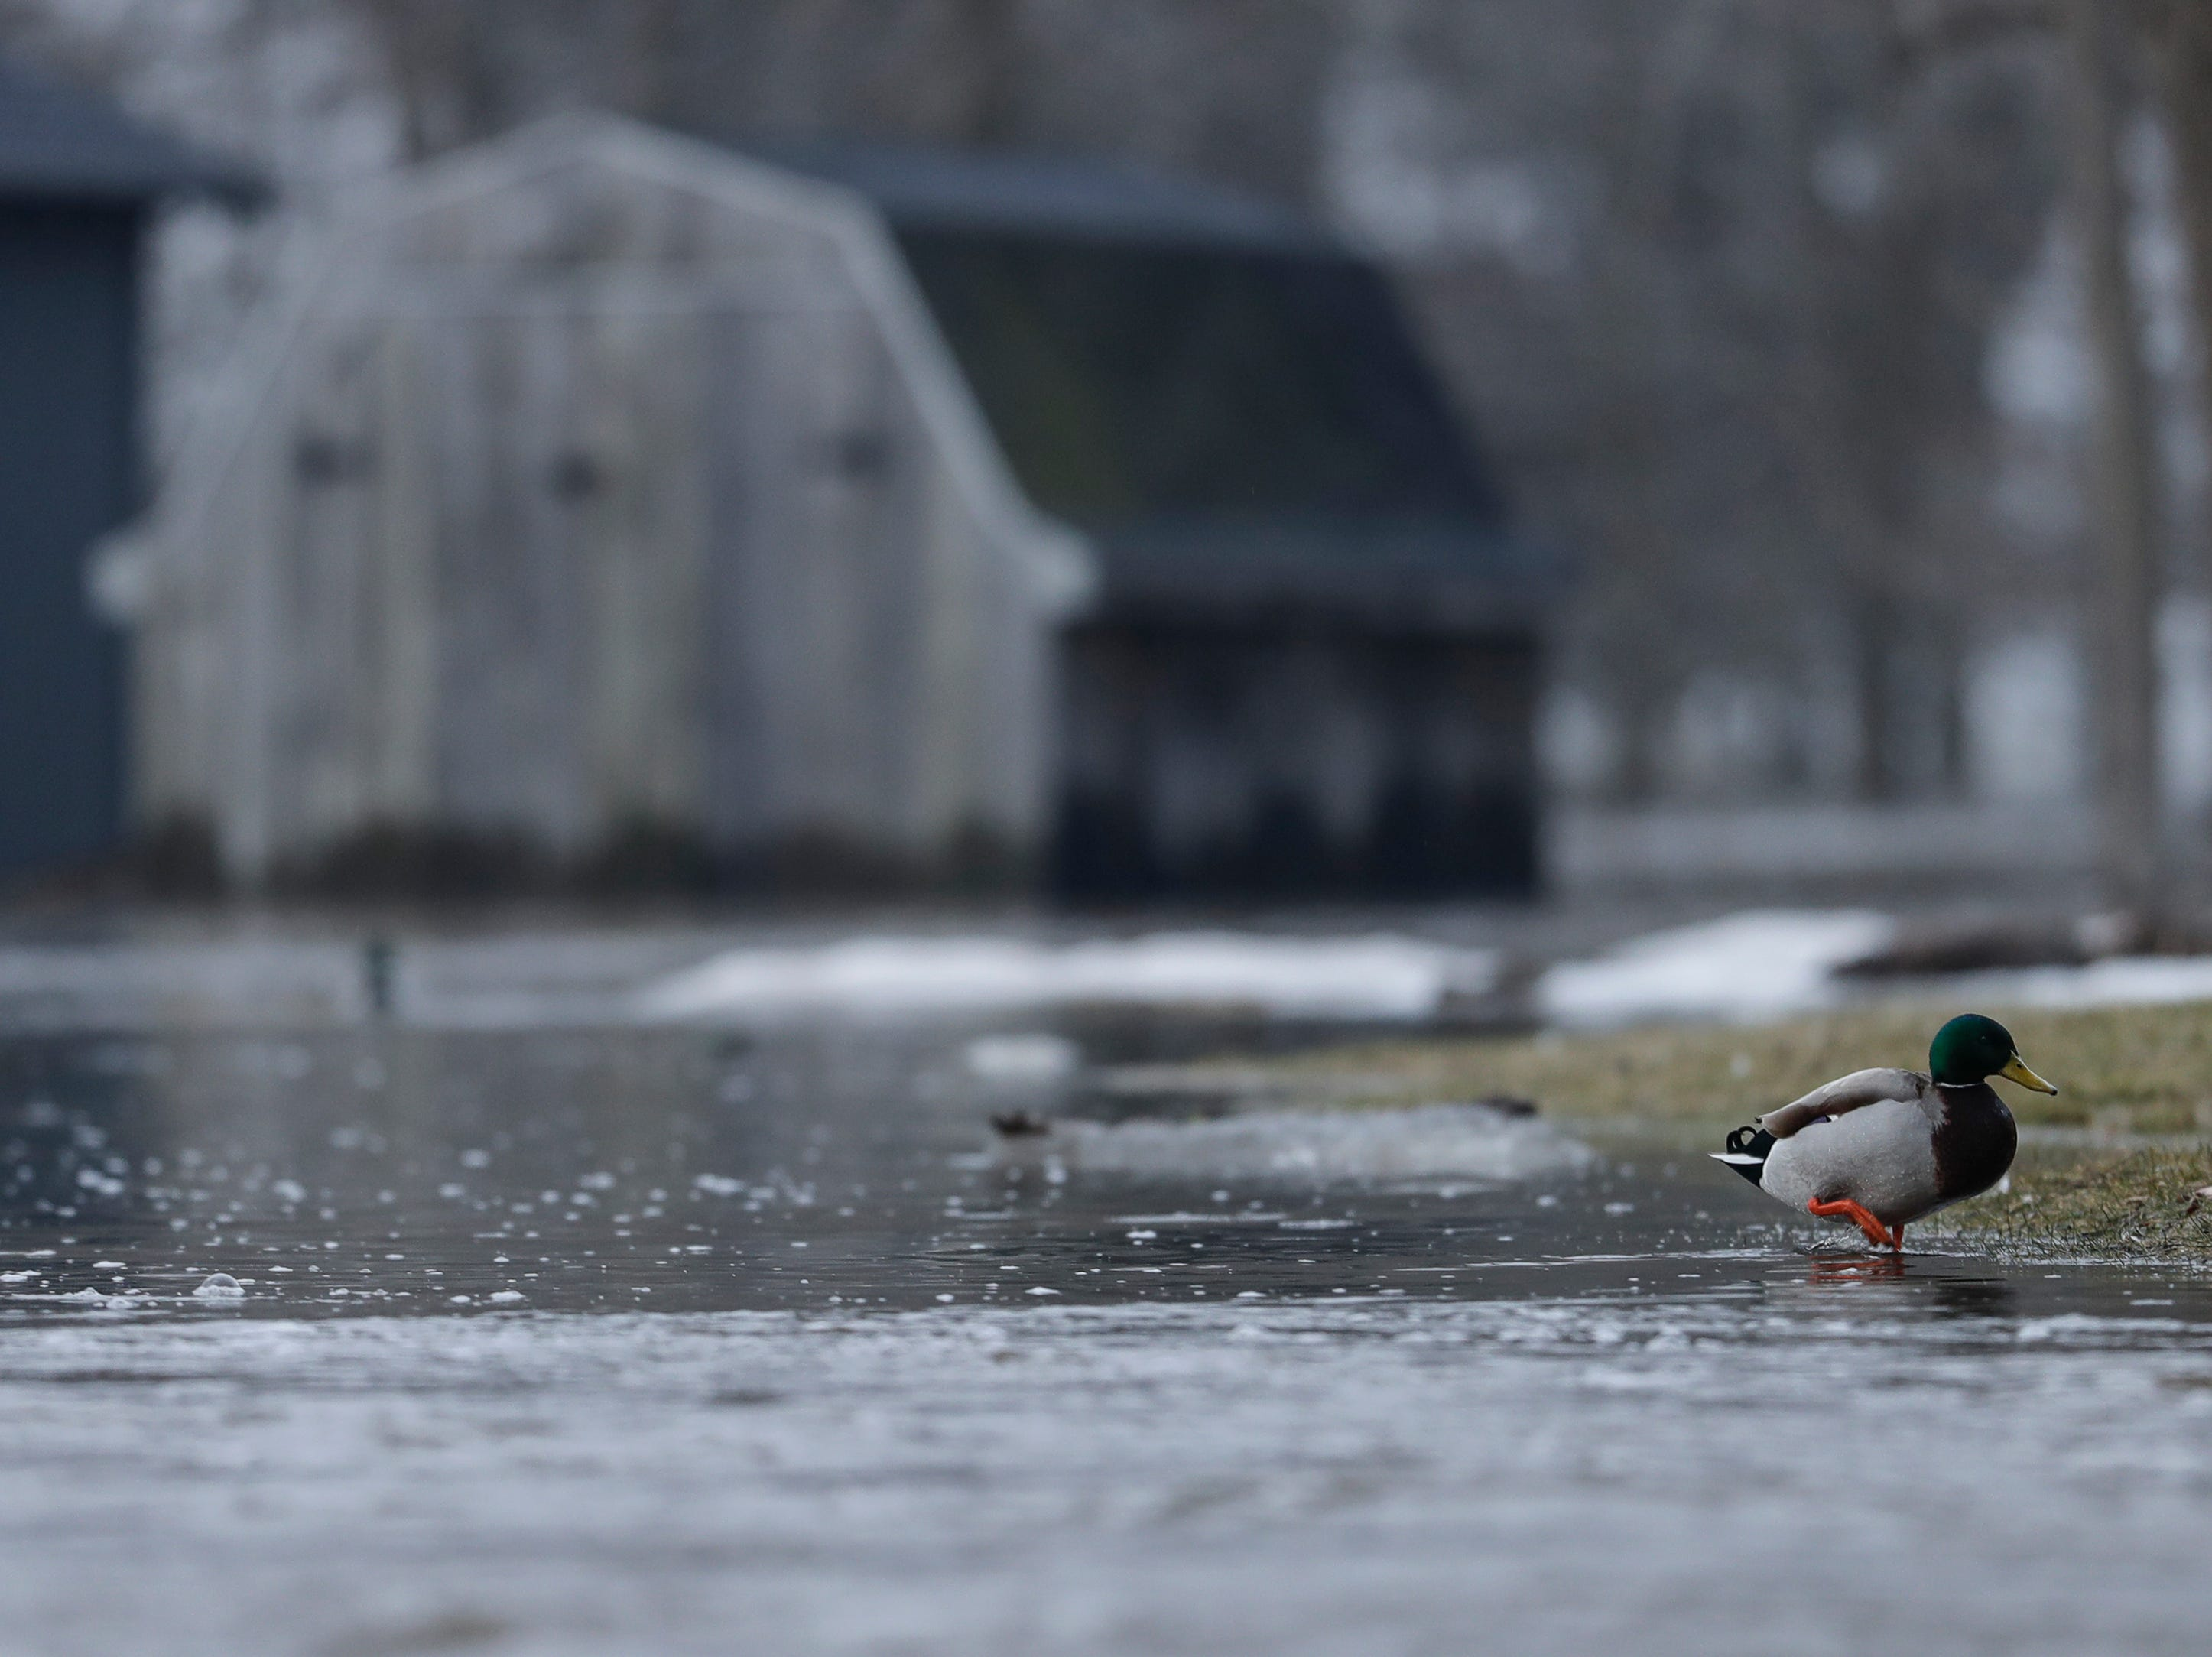 A duck swims in a backyard after an ice jam on the Manitowoc River causes severe flooding near Mill Road Wednesday, March 20, 2019, in Manitowoc, Wis. Joshua Clark/USA TODAY NETWORK-Wisconsin